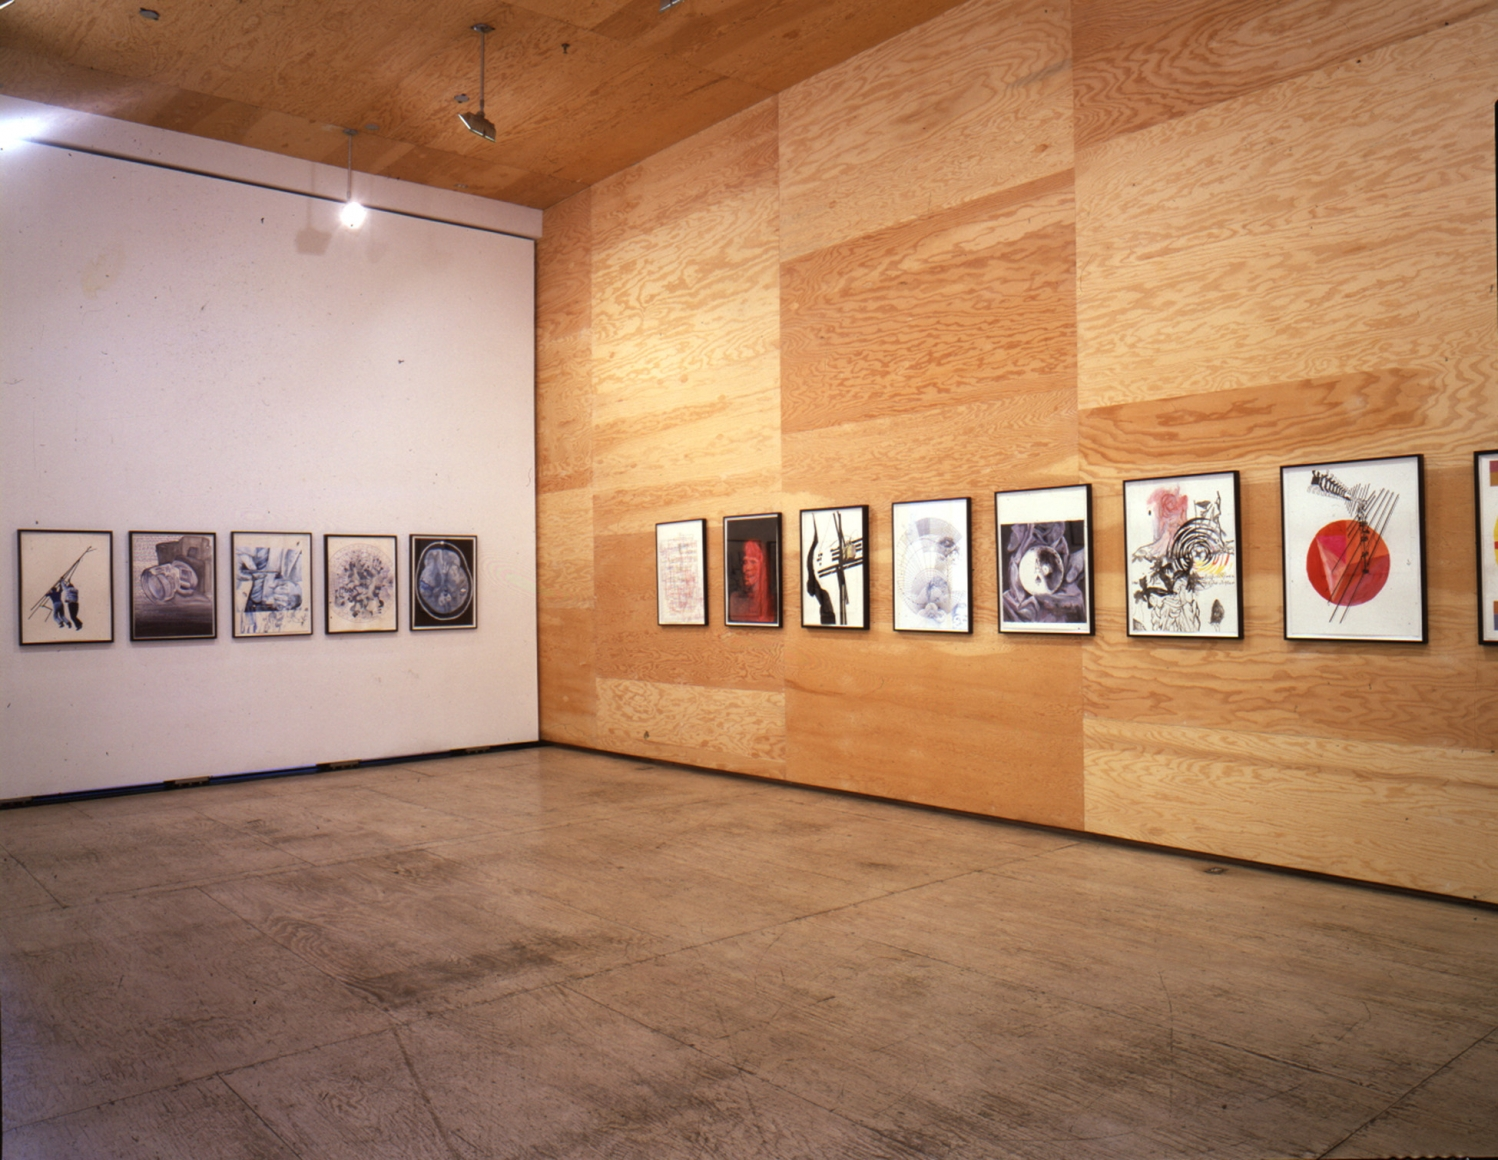 Tony Oursler Drawings 11 April - 1 June 2002 installation view 2